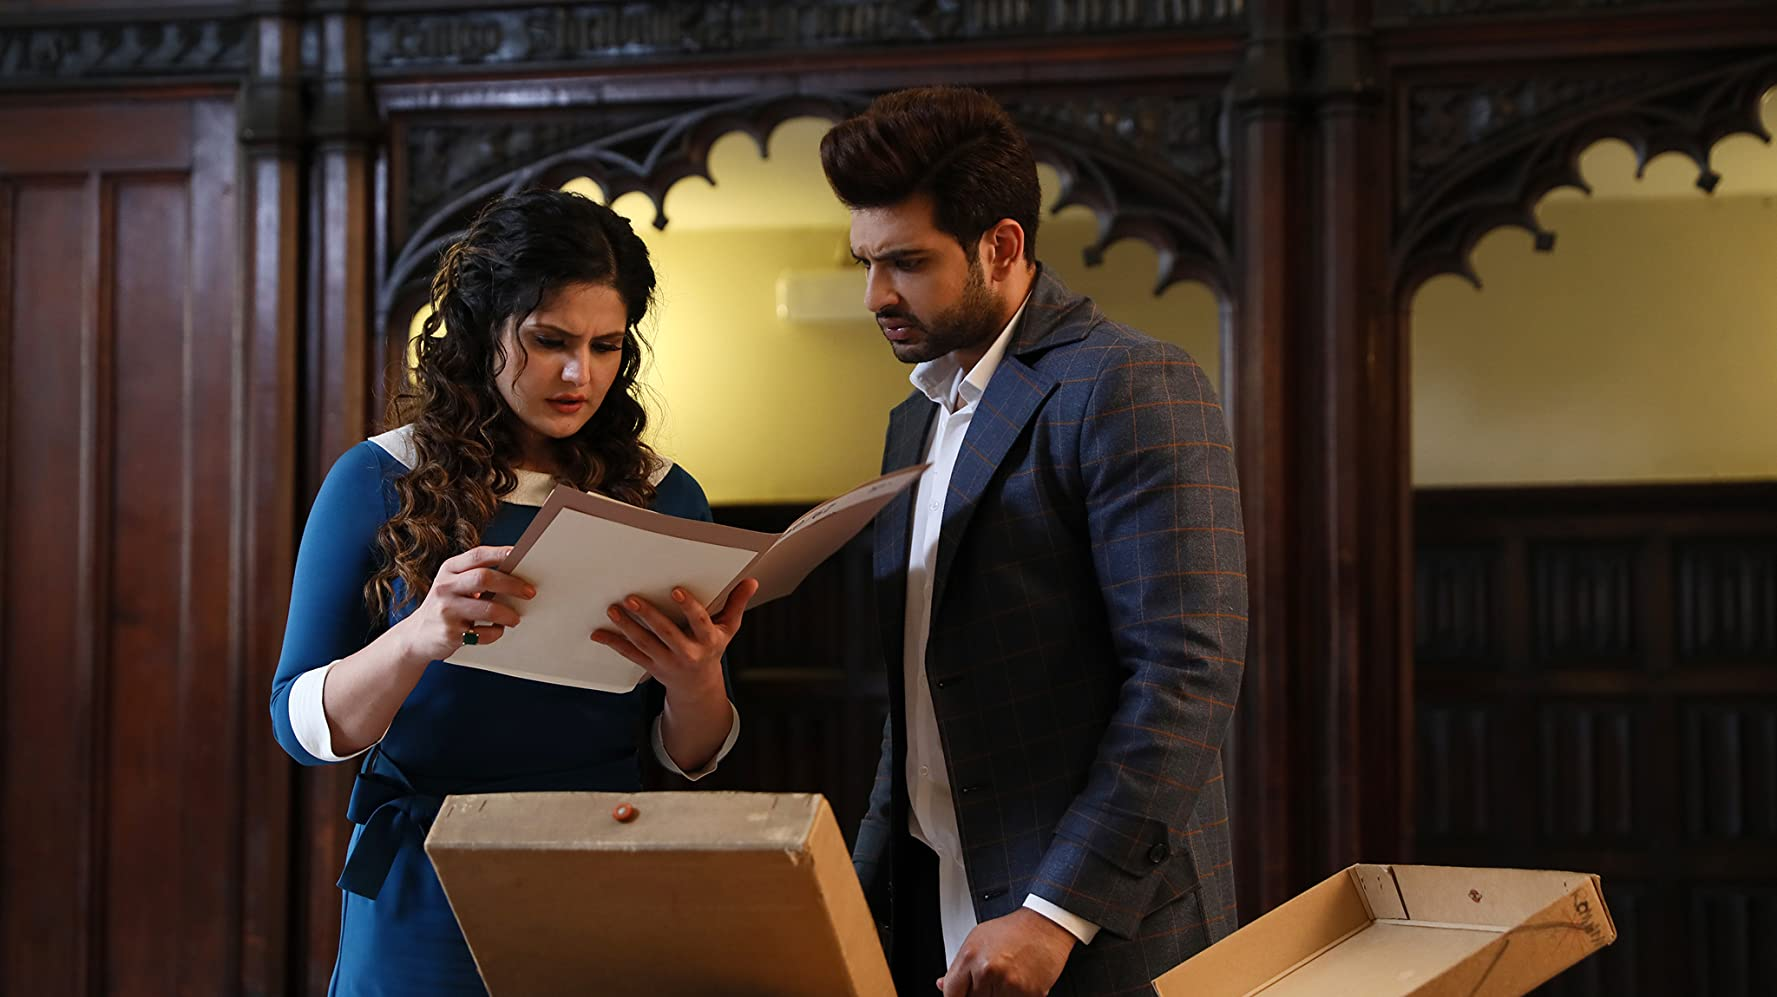 Zareen Khan and Karan Kundrra in 1921 (2018)